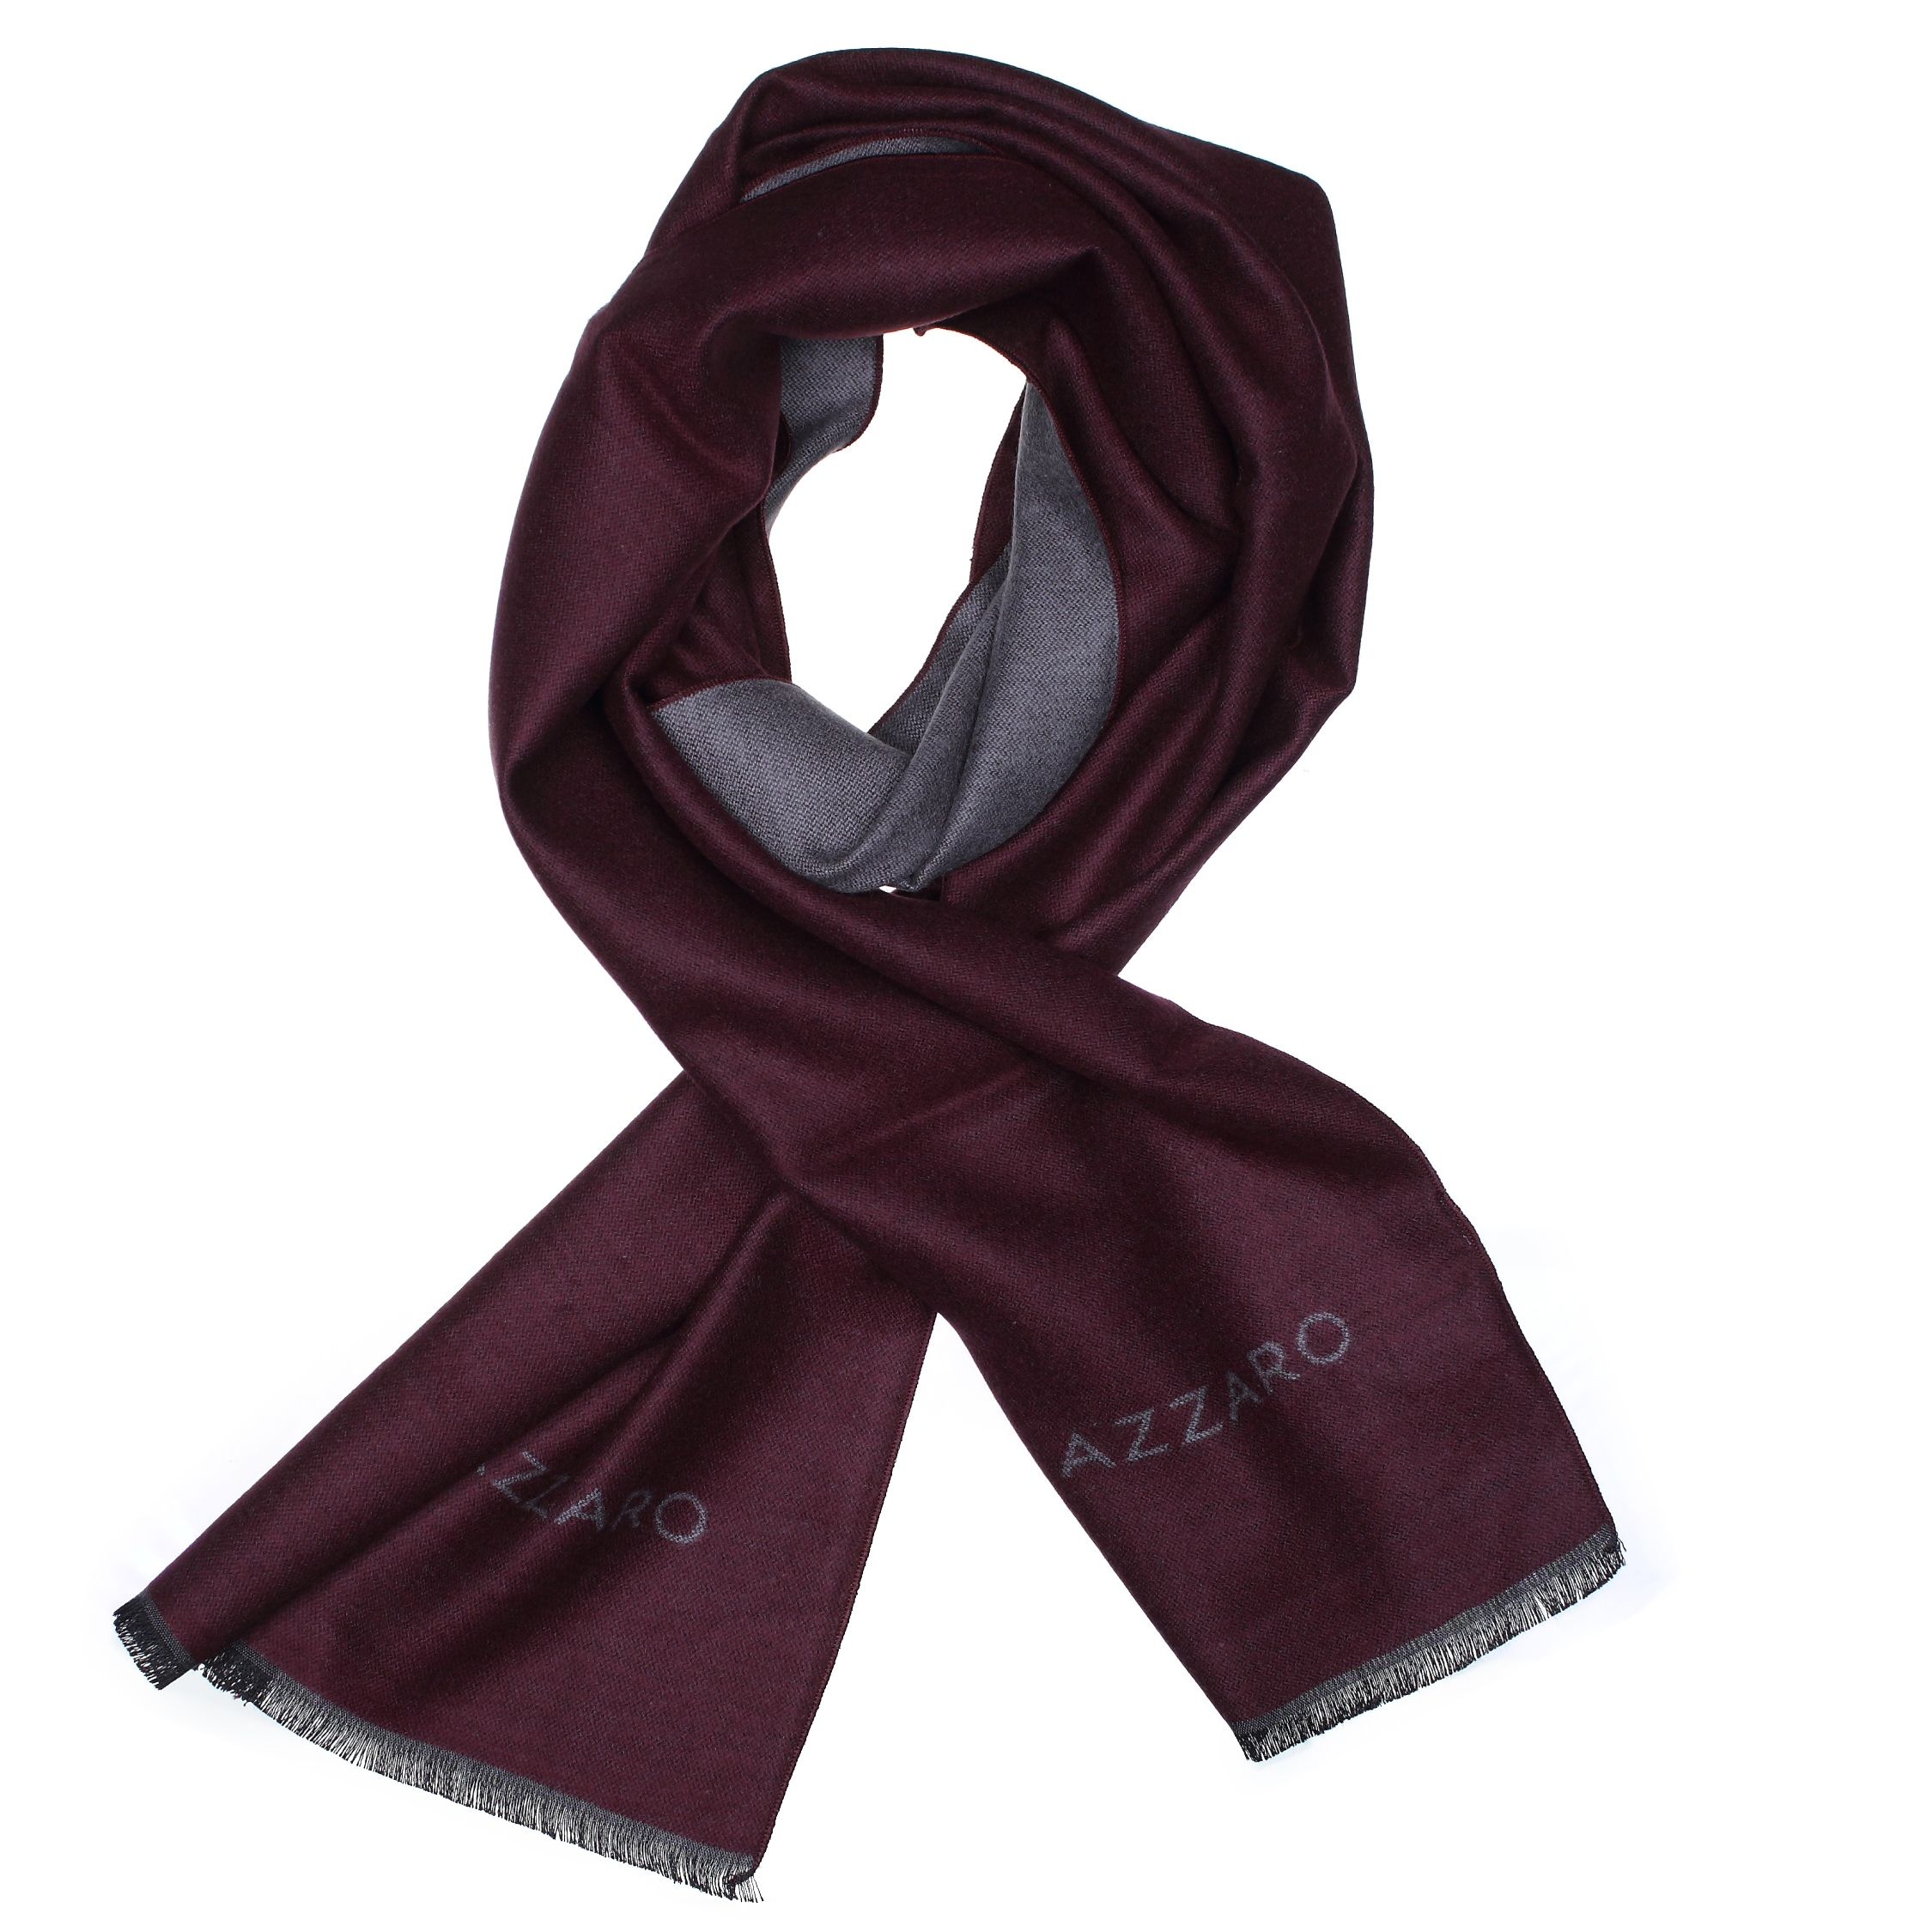 https://www.leadermode.com/184173/azzaro-foulard-uni-1-bordeaux.jpg